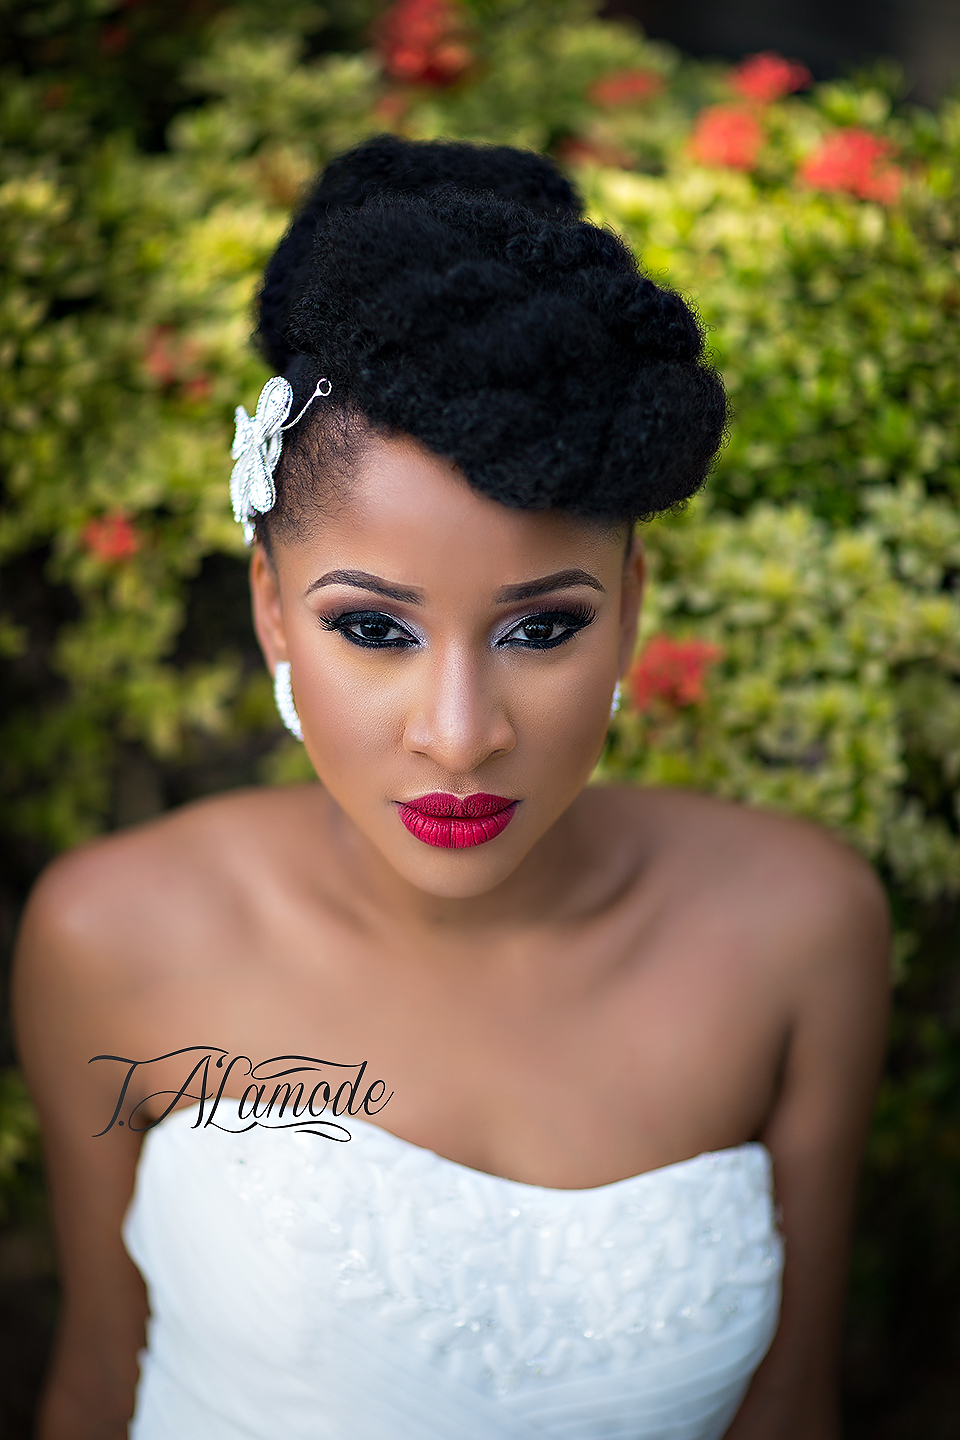 Wedding Makeup Looks For Black Hair : Striking Natural Hair Looks for the 2015 Bride! T.Alamode